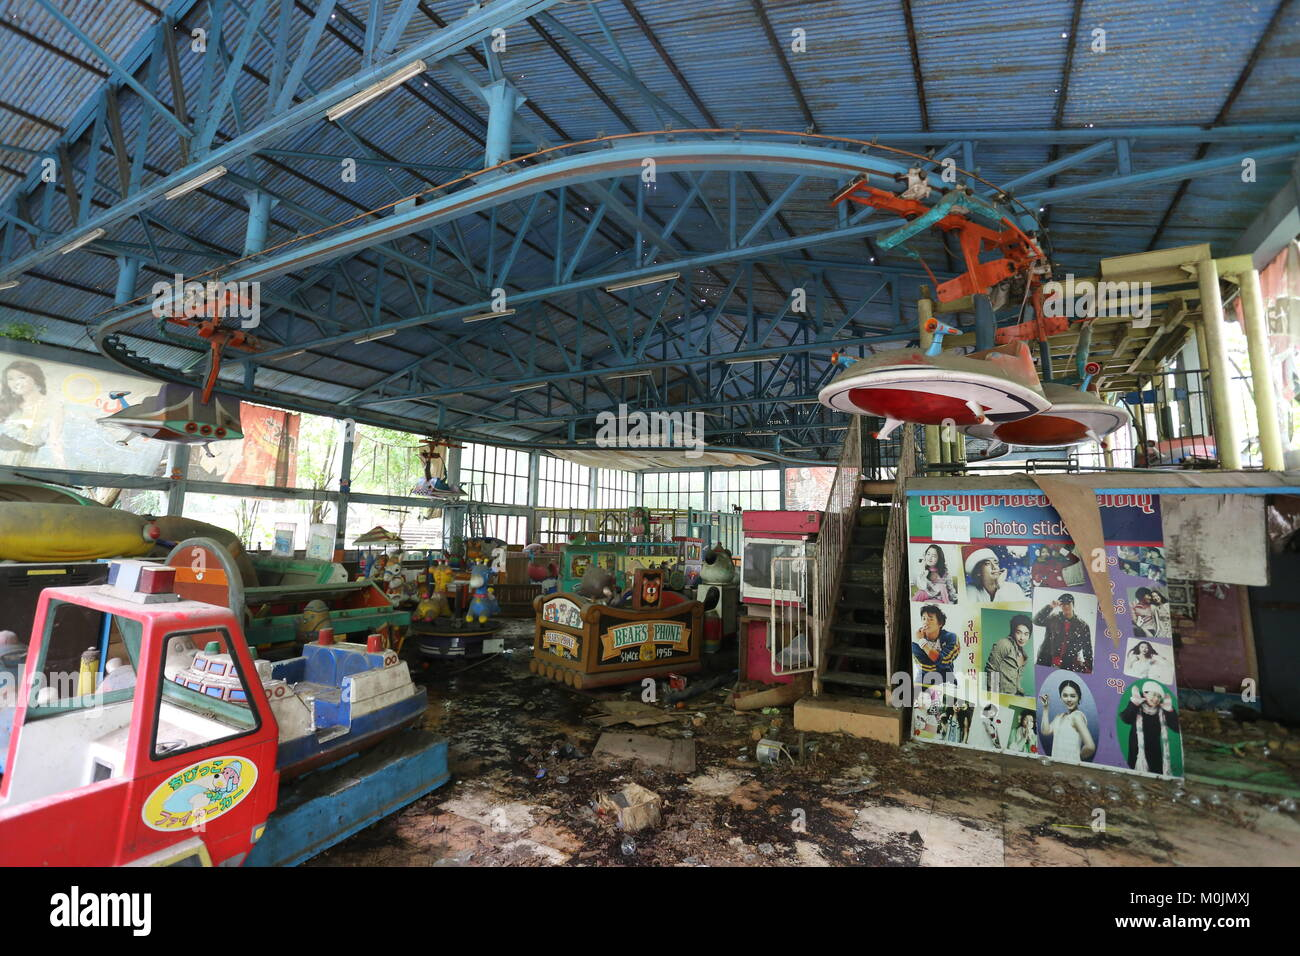 Page 2 Abandoned Amusement Park High Resolution Stock Photography And Images Alamy